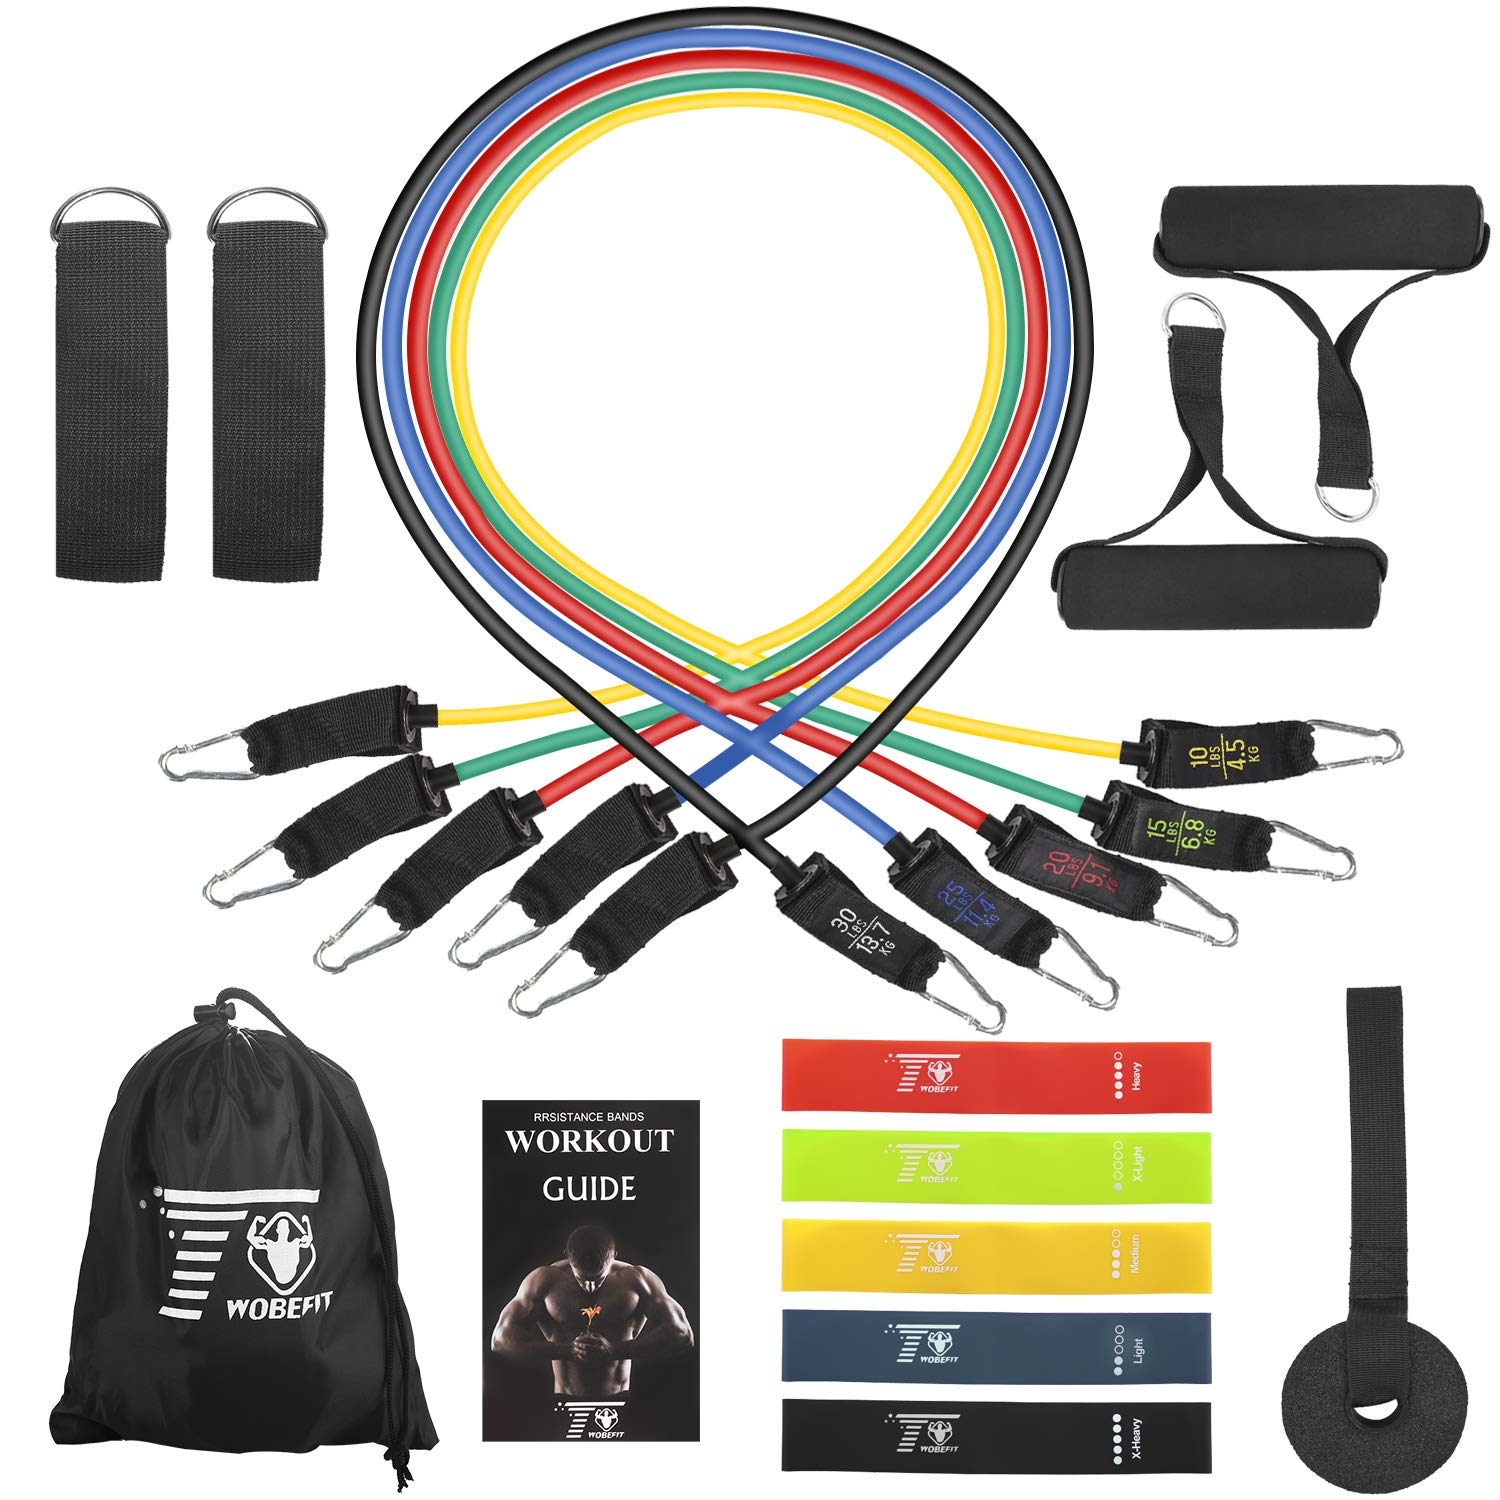 TwobeFit Resistance Bands Set, Exercise Bands with Handles, Workout Tubes, Door Anchor, Ankle Straps and Workout Guide Attached- for Resistance Training, Home Workouts, Physical (RBS+L)